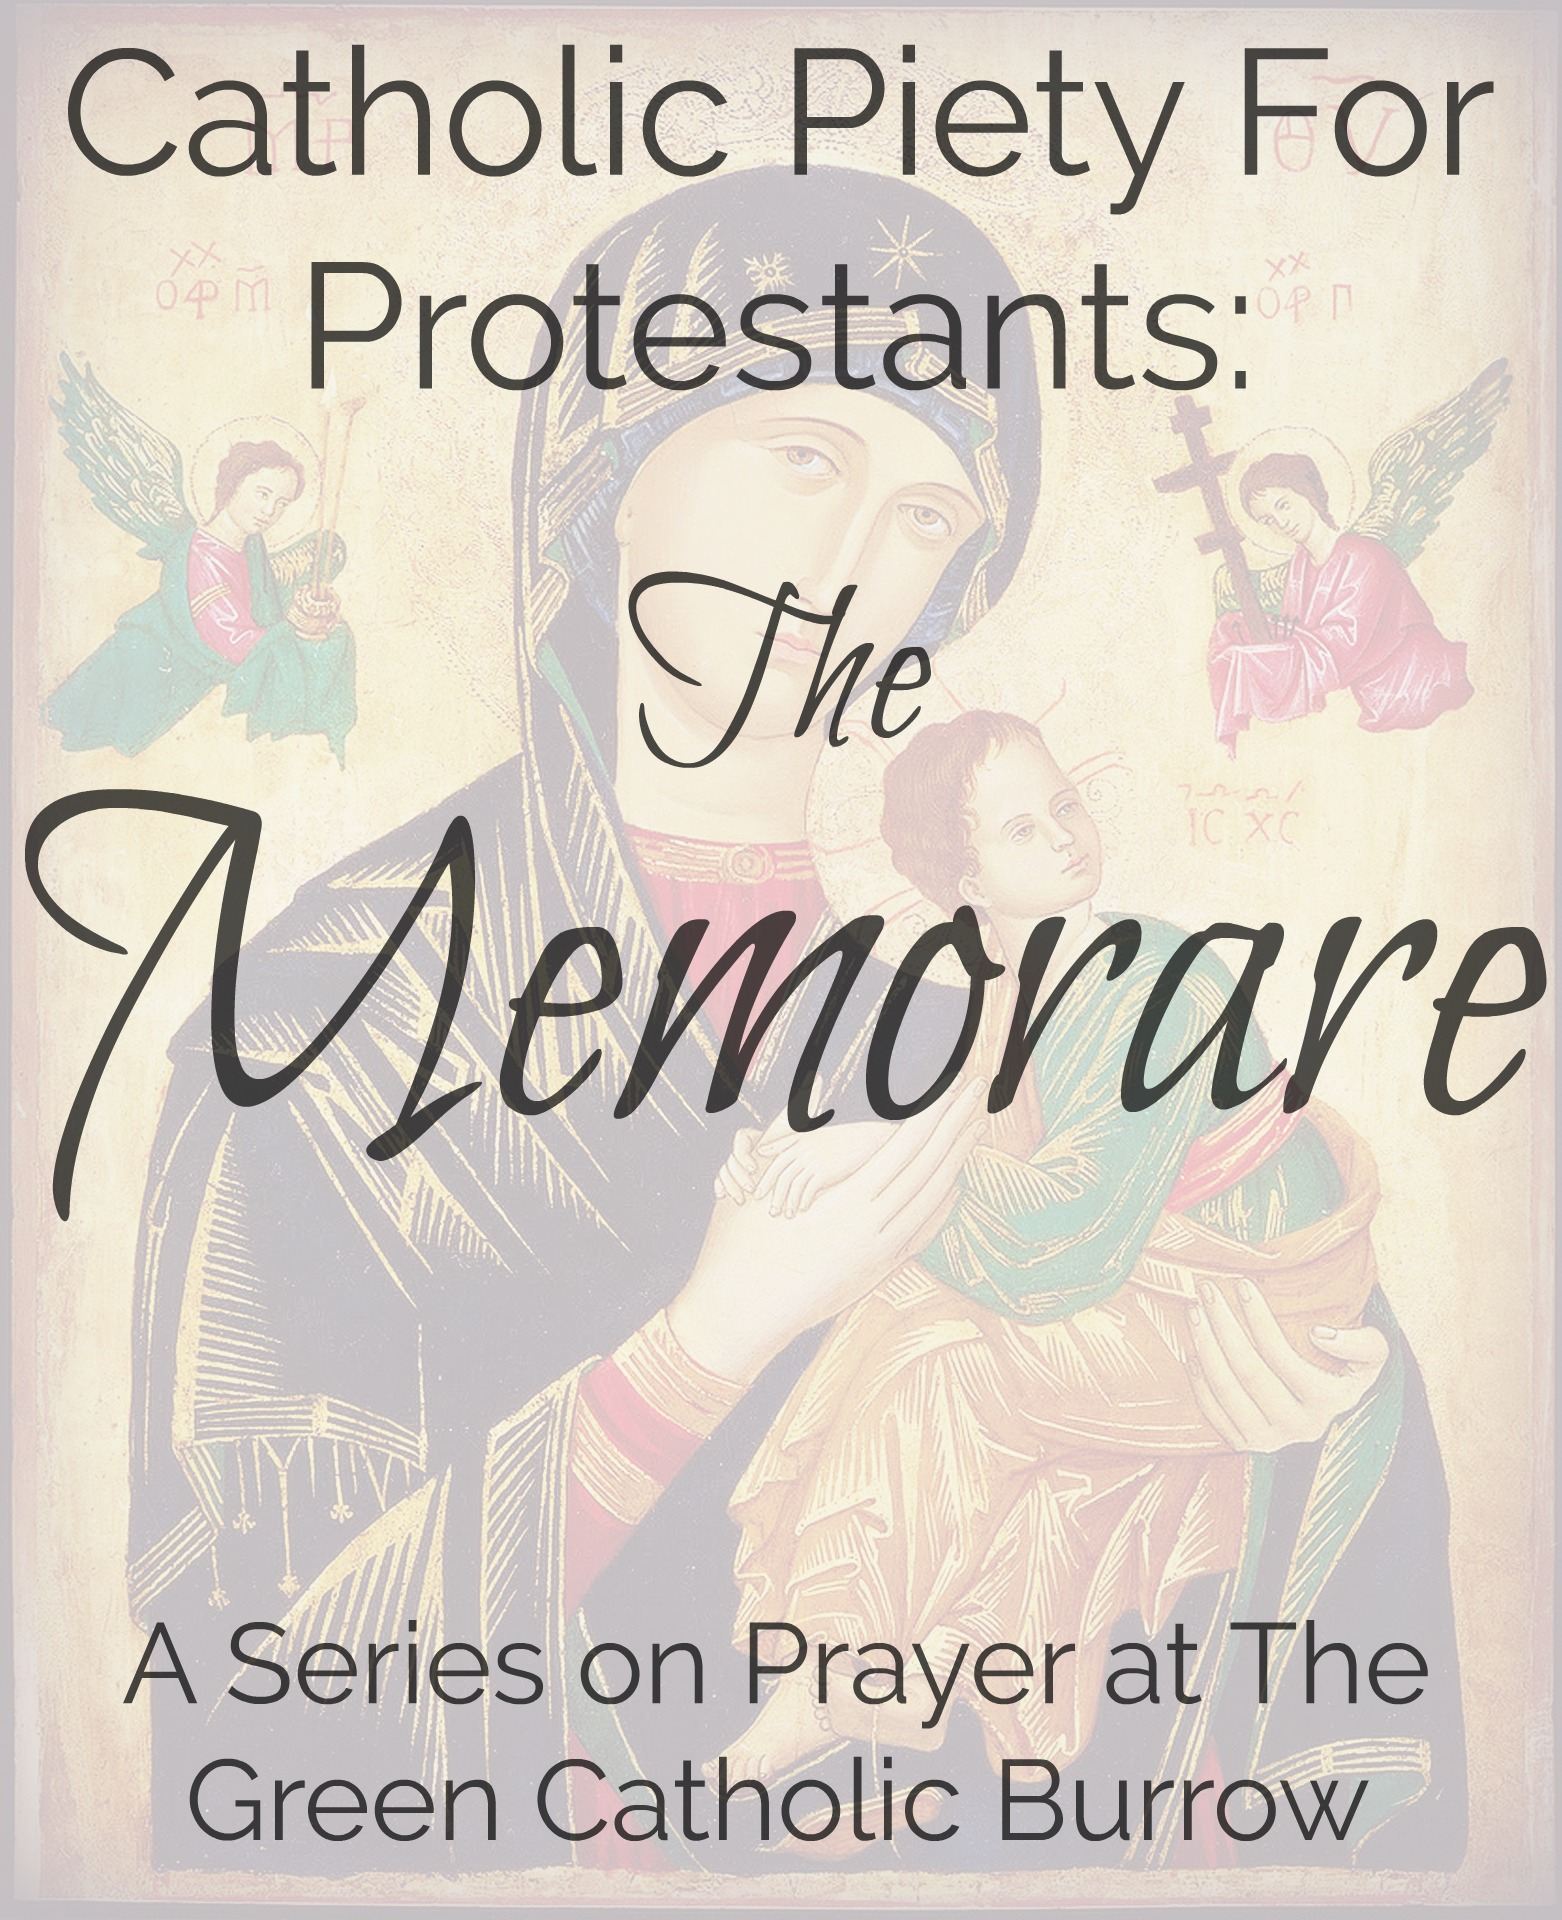 photograph relating to Memorare Prayer Printable called The Memorare - Catholic Piety for Protestants Eco-friendly